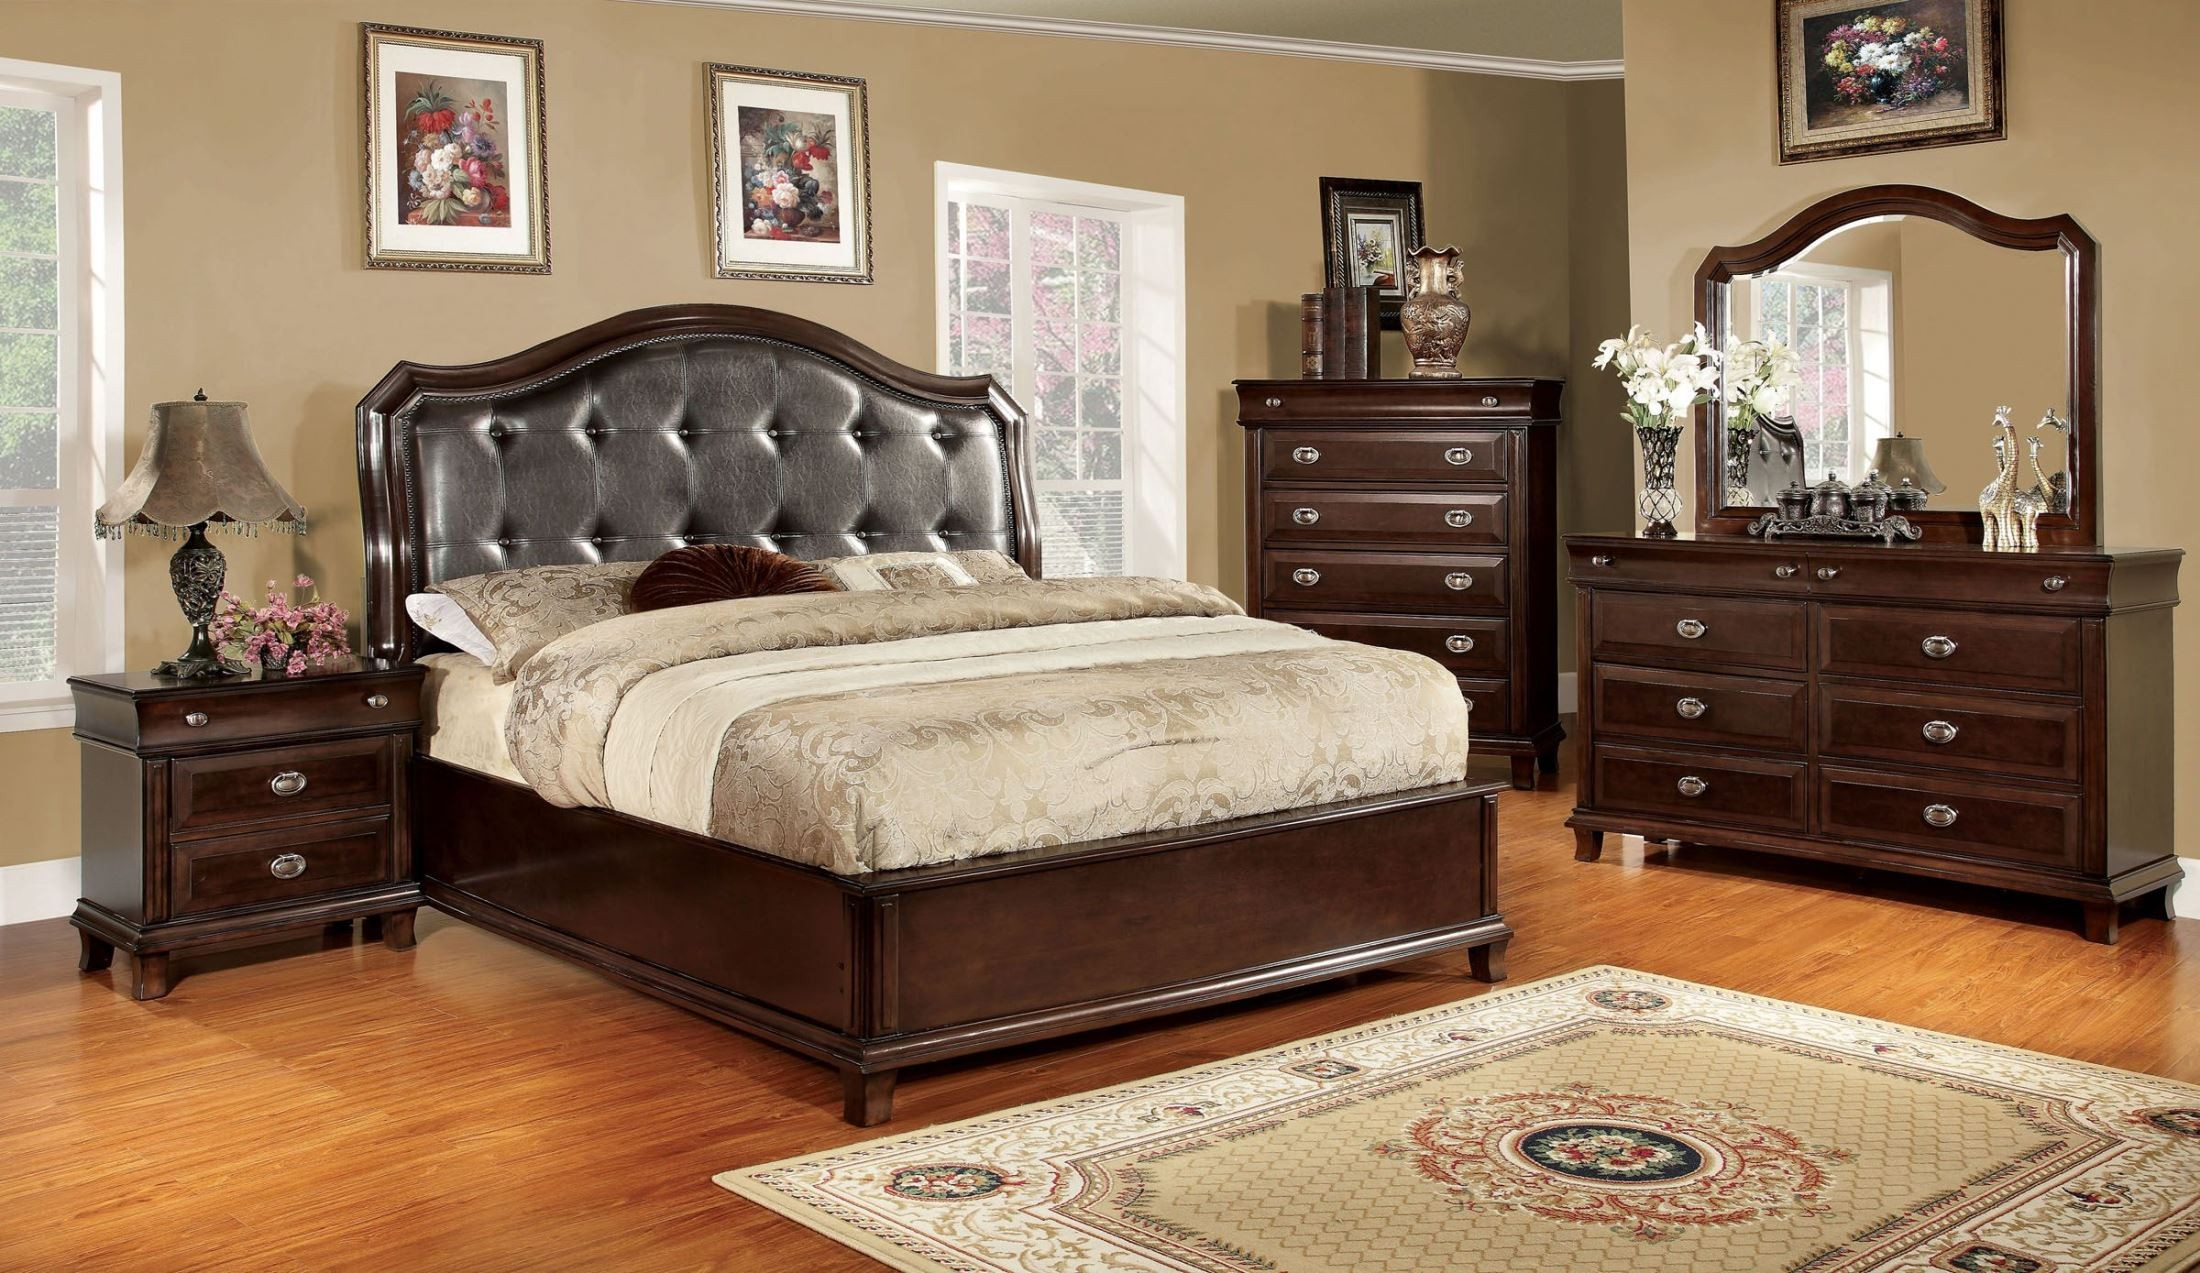 Arden brown cherry faux leather platform bedroom set for M bedroom furniture